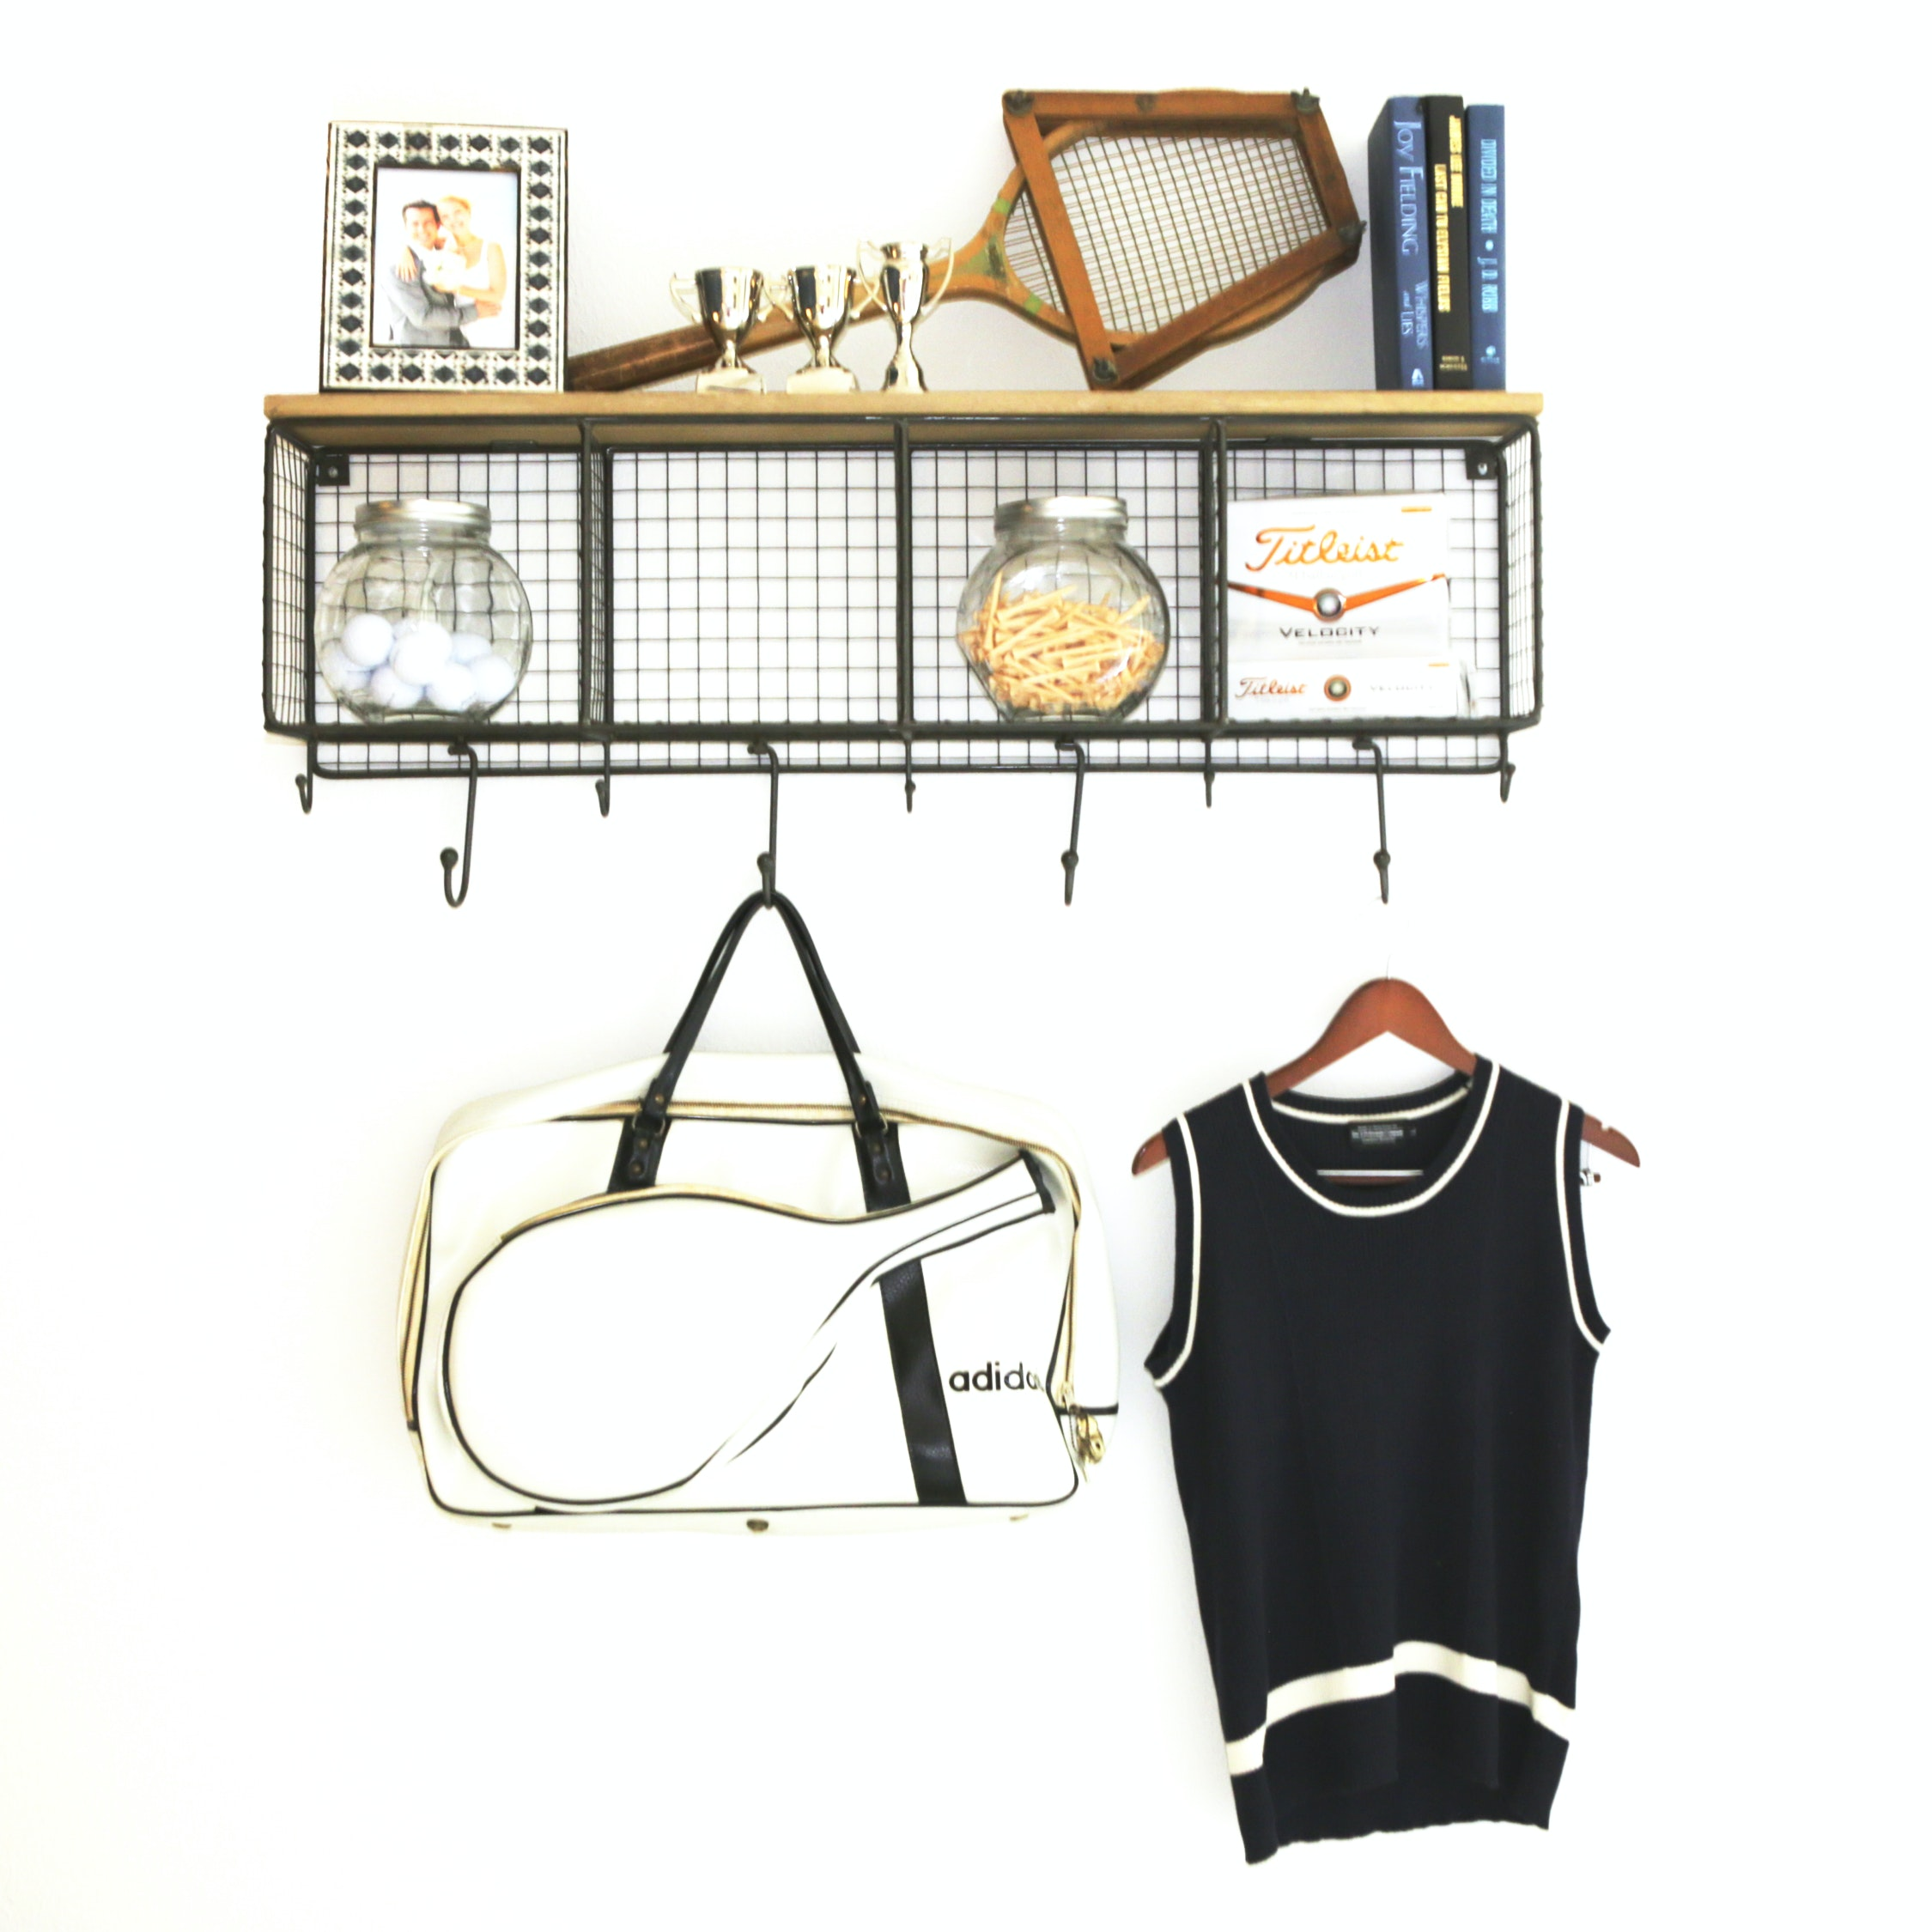 Decorative Wire Wall Shelf, Vintage Adidas Racquetball Bag, and Other Decor